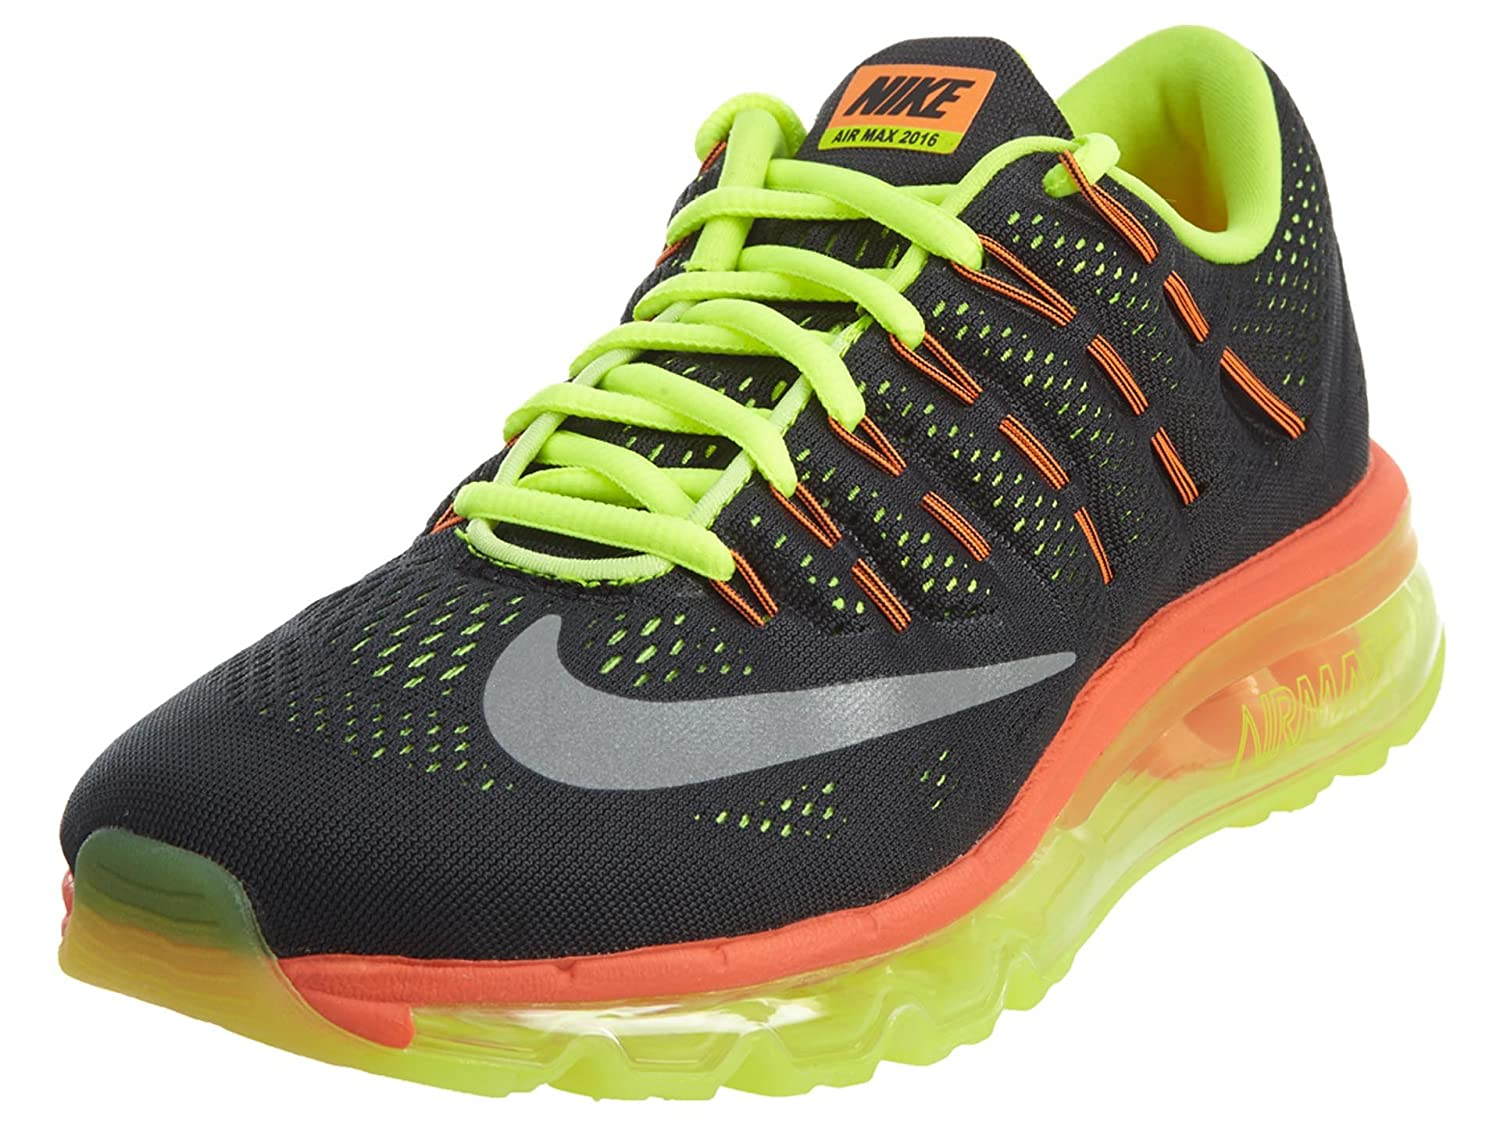 the best attitude c821c b5424 Amazon.com | Nike Girl's/Youth Air Max 2016 Running/Athletic Shoes | Running